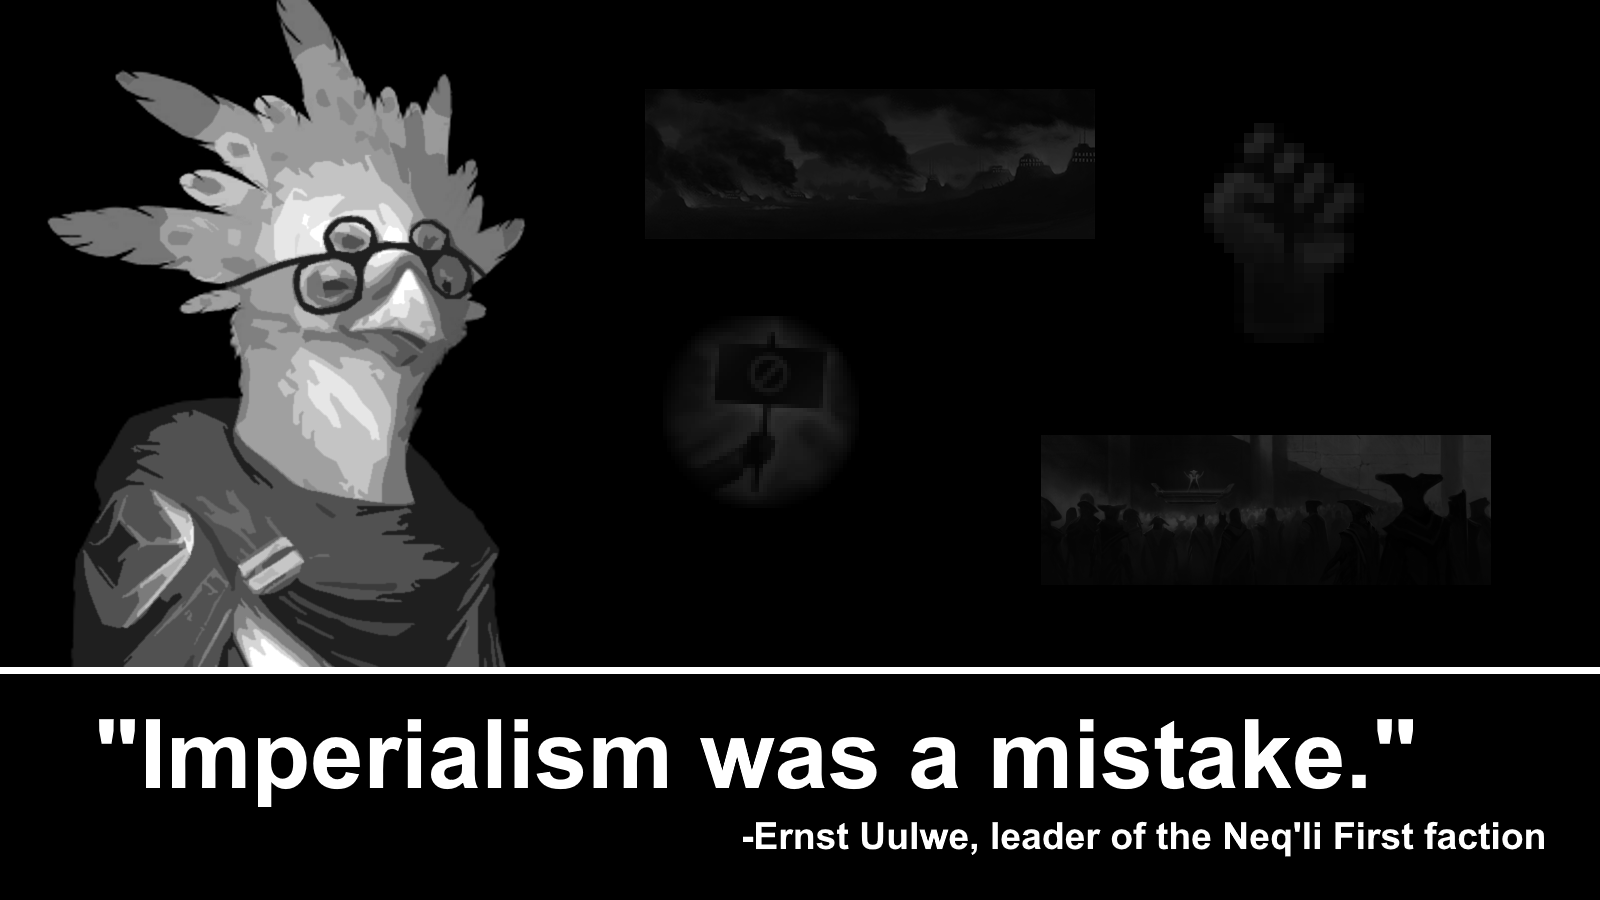 Image: Dr. Ernst Uulwe, leader of the Neq'li Empire's supremacist faction, apparently regrets policies like the primitive integration campaign that is the cause of the conflicts on Thripto.